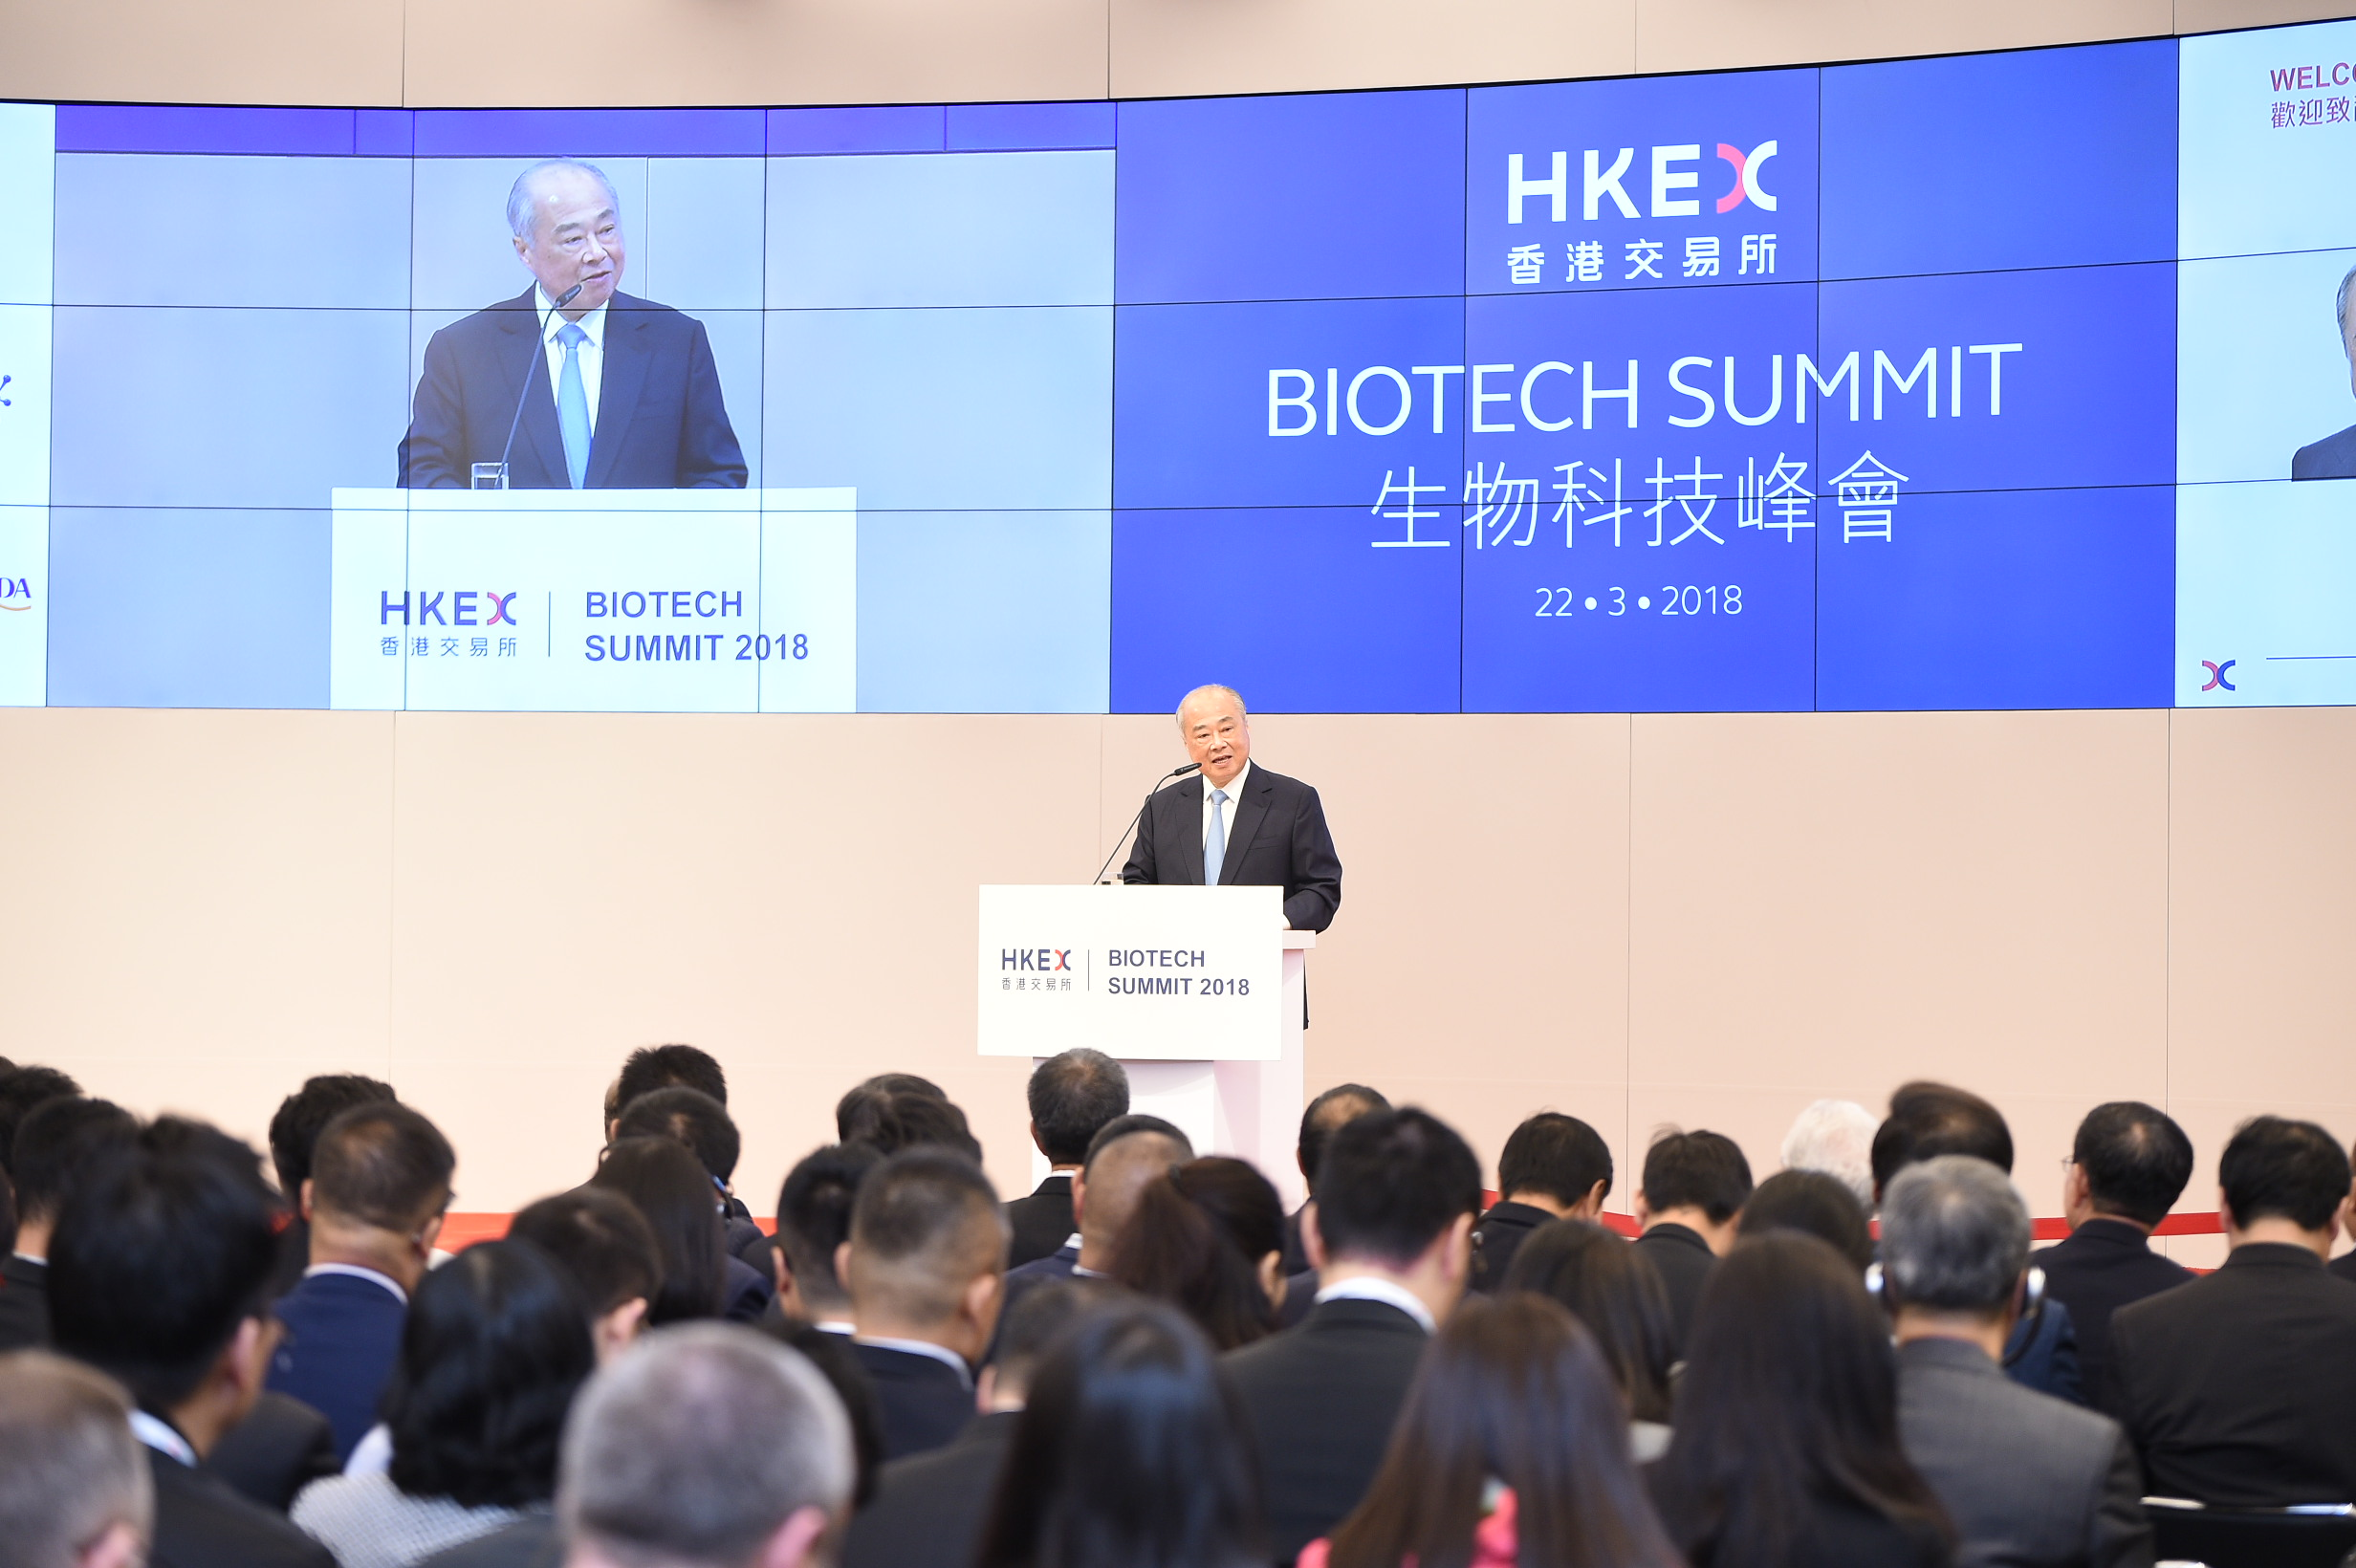 HKEX Chairman C K Chow welcomes delegates and guests, saying he looks forward to building a vibrant and sustainable biotech ecosystem together with them in Hong Kong.